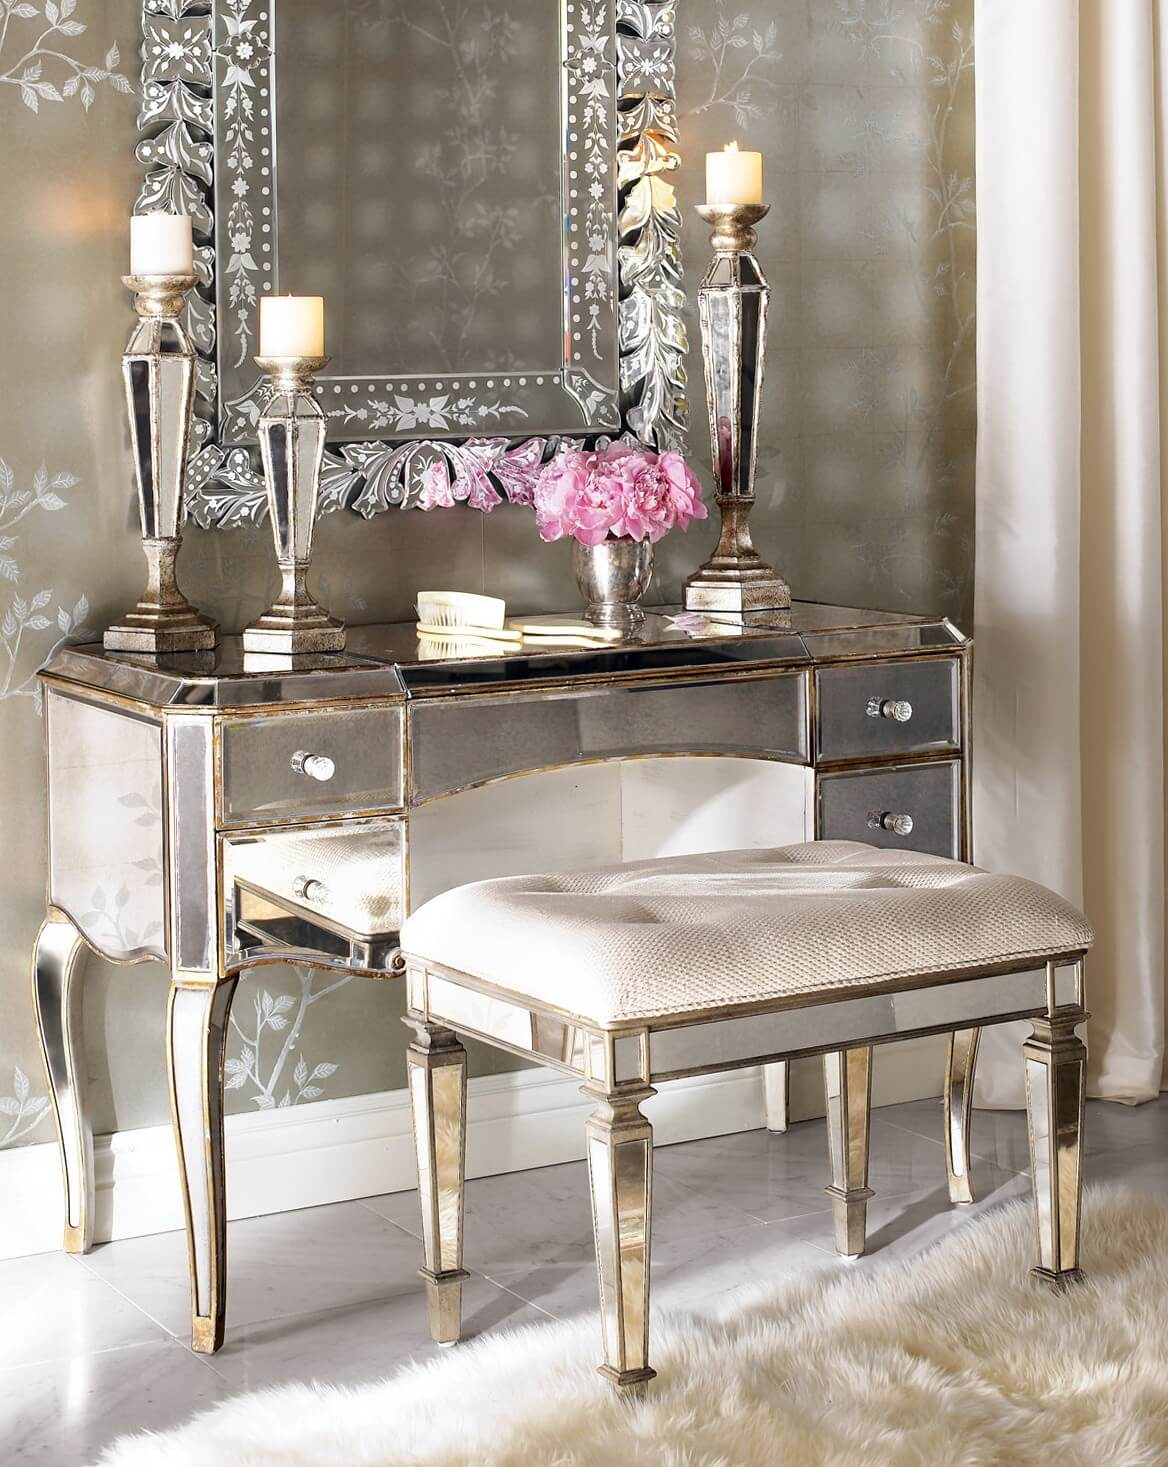 15 Stunning Makeup Vanity Decor Ideas  Style Motivation. Backyard Garden Plants Ideas. Kitchen Wall Quotes Canada. Kitchen Ideas For Mobile Home Remodel. Bathroom Shower Glass Tile Ideas. Backyard Landscape Ideas For Families. Kitchen Design Barnes London. Brunch Ideas Drinks. Tuscan Style Kitchen Backsplash Ideas